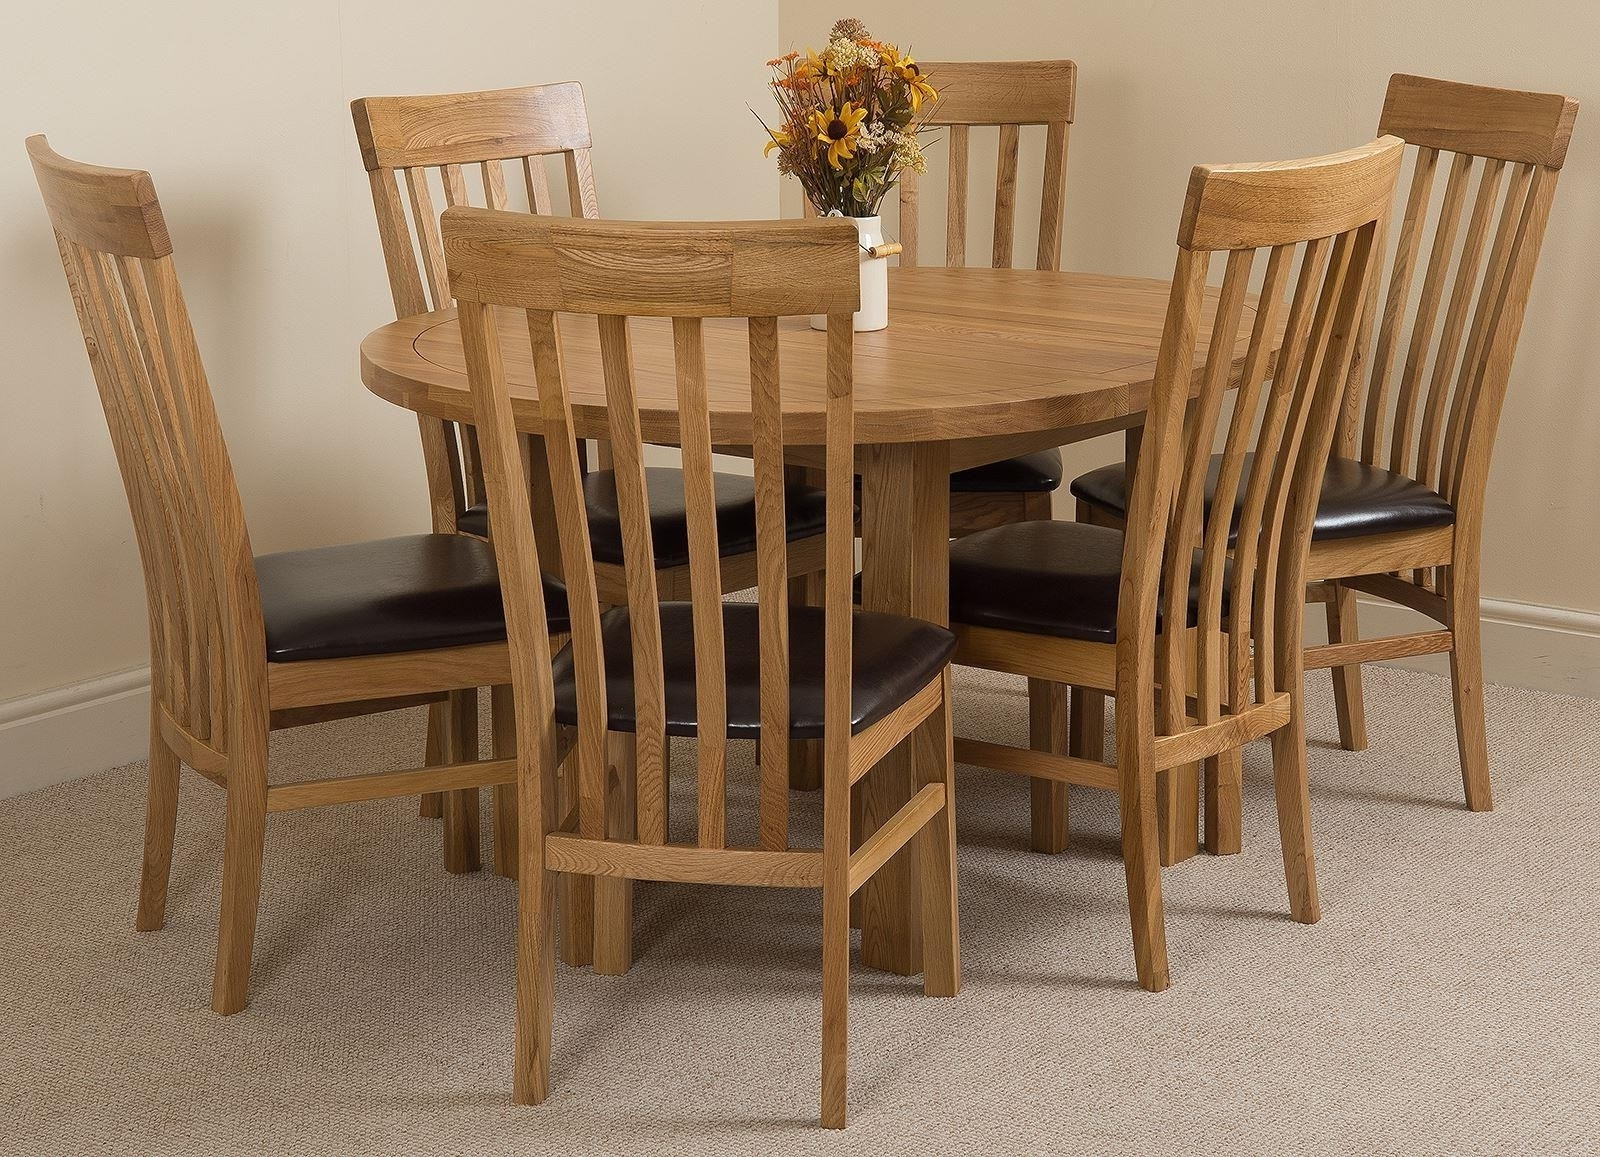 Oak Furniture King Pertaining To Well Liked Cheap Oak Dining Sets (View 20 of 25)